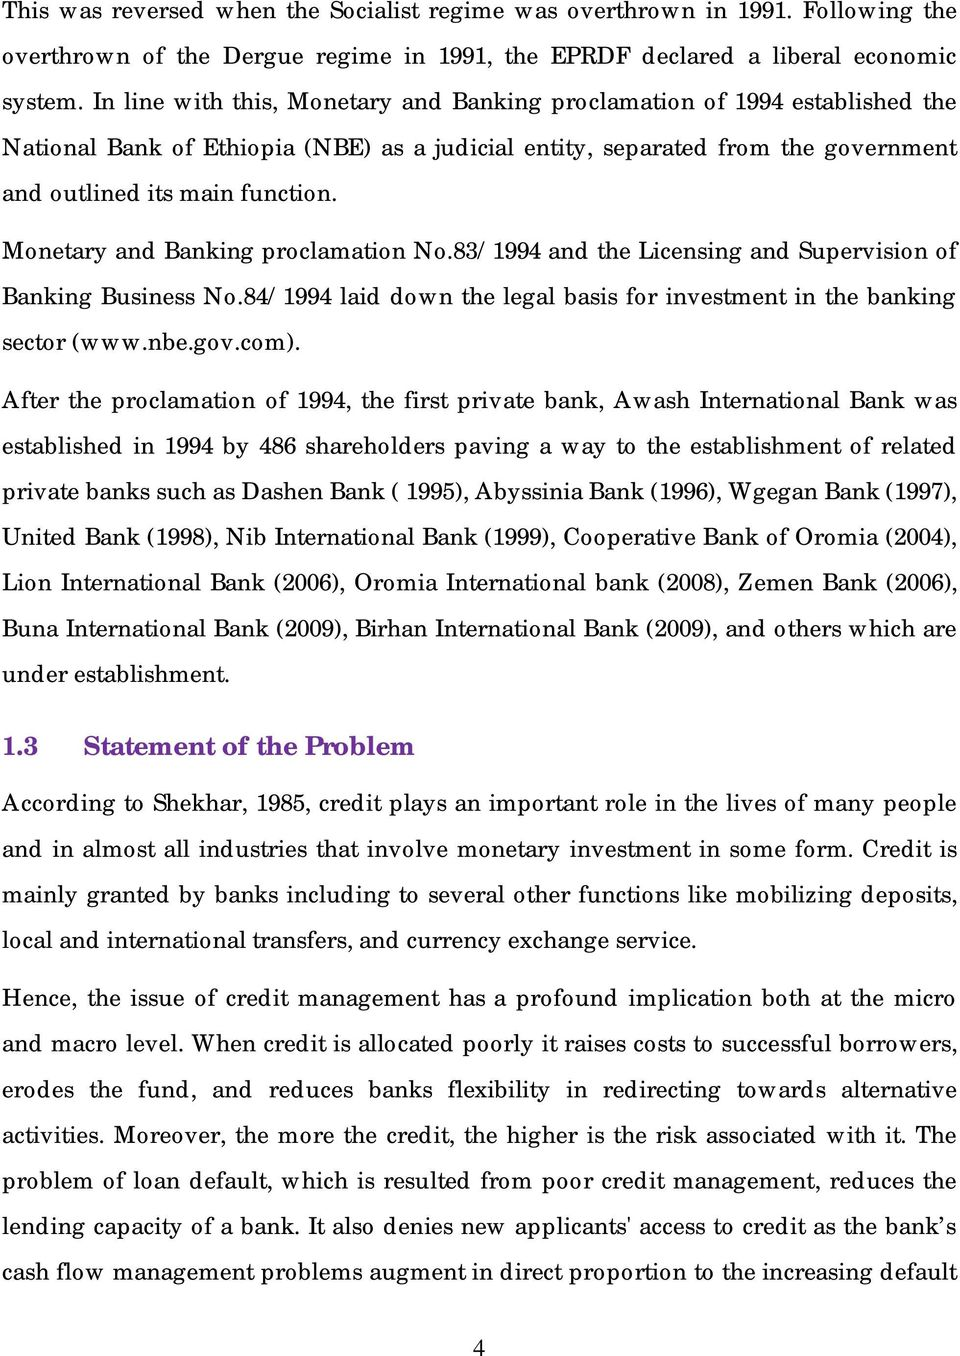 Monetary and Banking proclamation No.83/1994 and the Licensing and Supervision of Banking Business No.84/1994 laid down the legal basis for investment in the banking sector (www.nbe.gov.com).